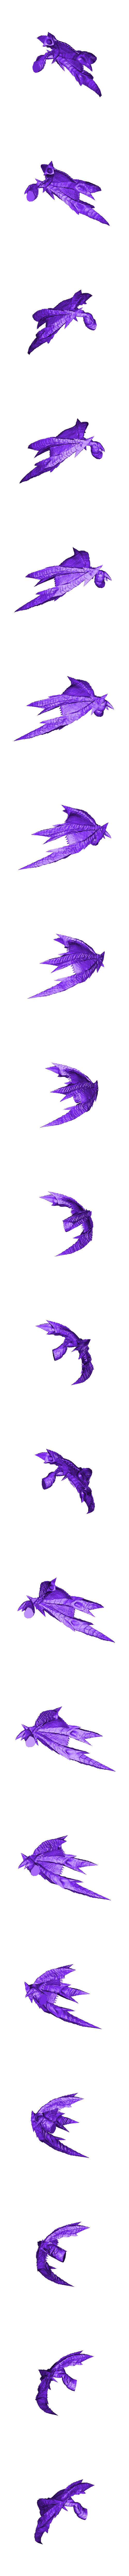 valst_left_wing.stl Download free STL file Monster Hunter XX-Valstrax • 3D printing template, Hobbyman